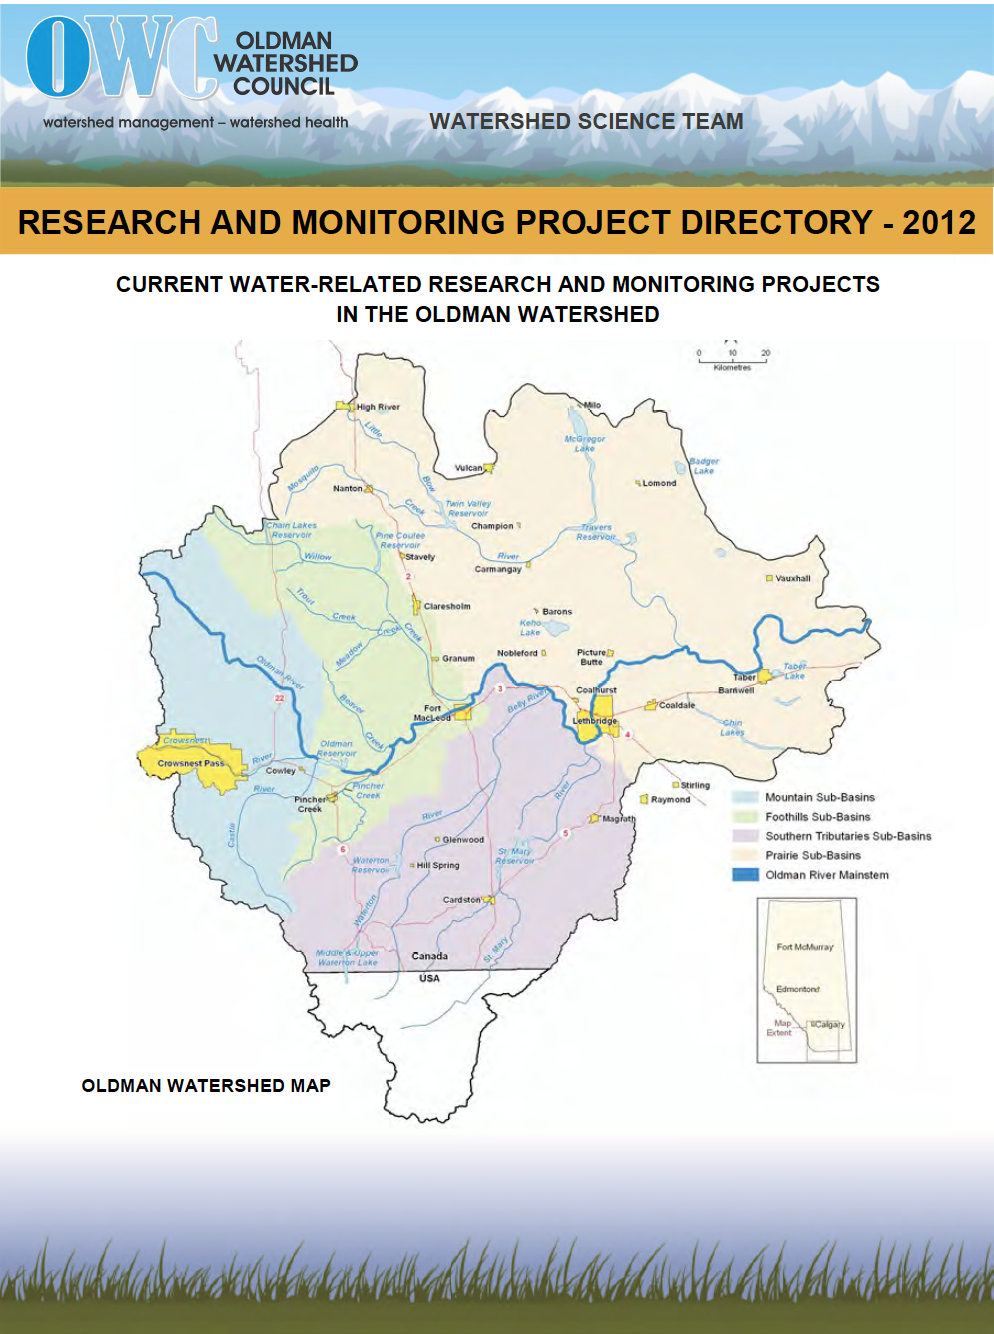 projectdirectory-2012.png